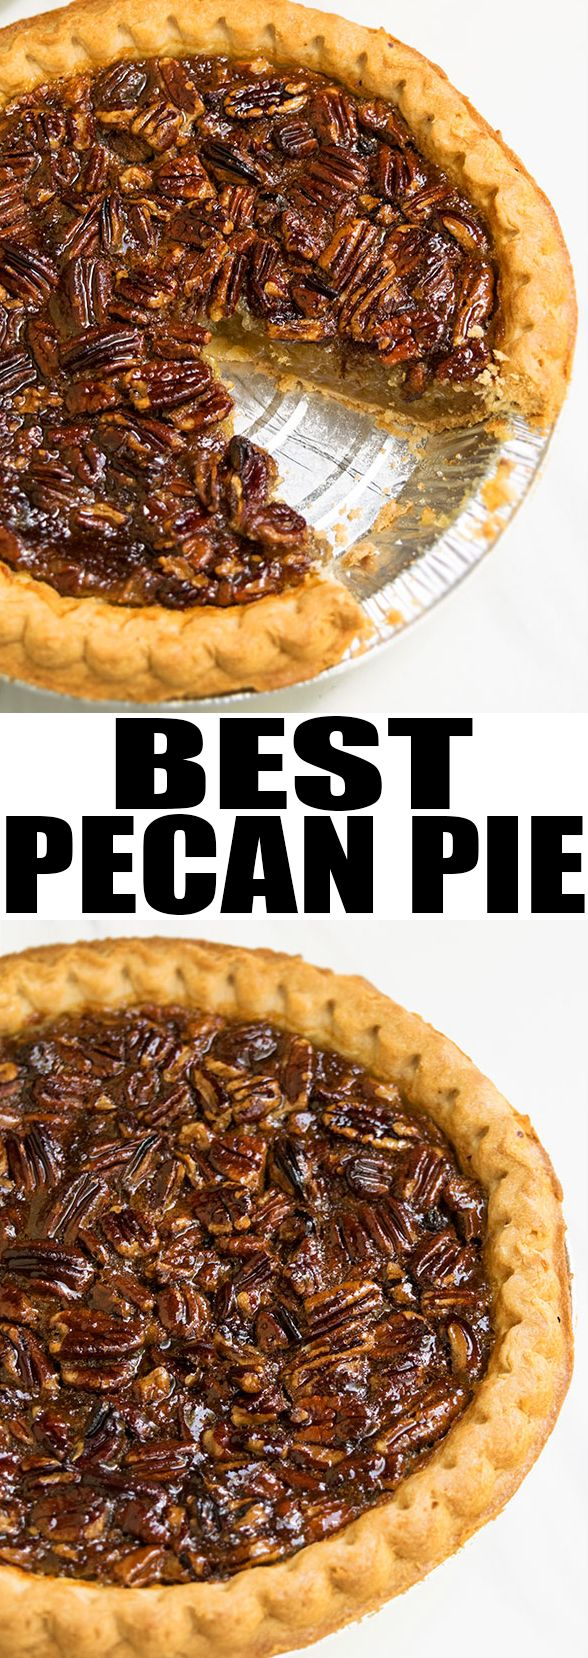 This easy PECAN PIE recipe with crispy crust and ooey gooey pecan filling is a classic! This Southern, old fashioned pecan pie requires simple ingredients and is the best Thanksgiving dessert. From cakewhiz.com #pecans #pie #thanksgiving